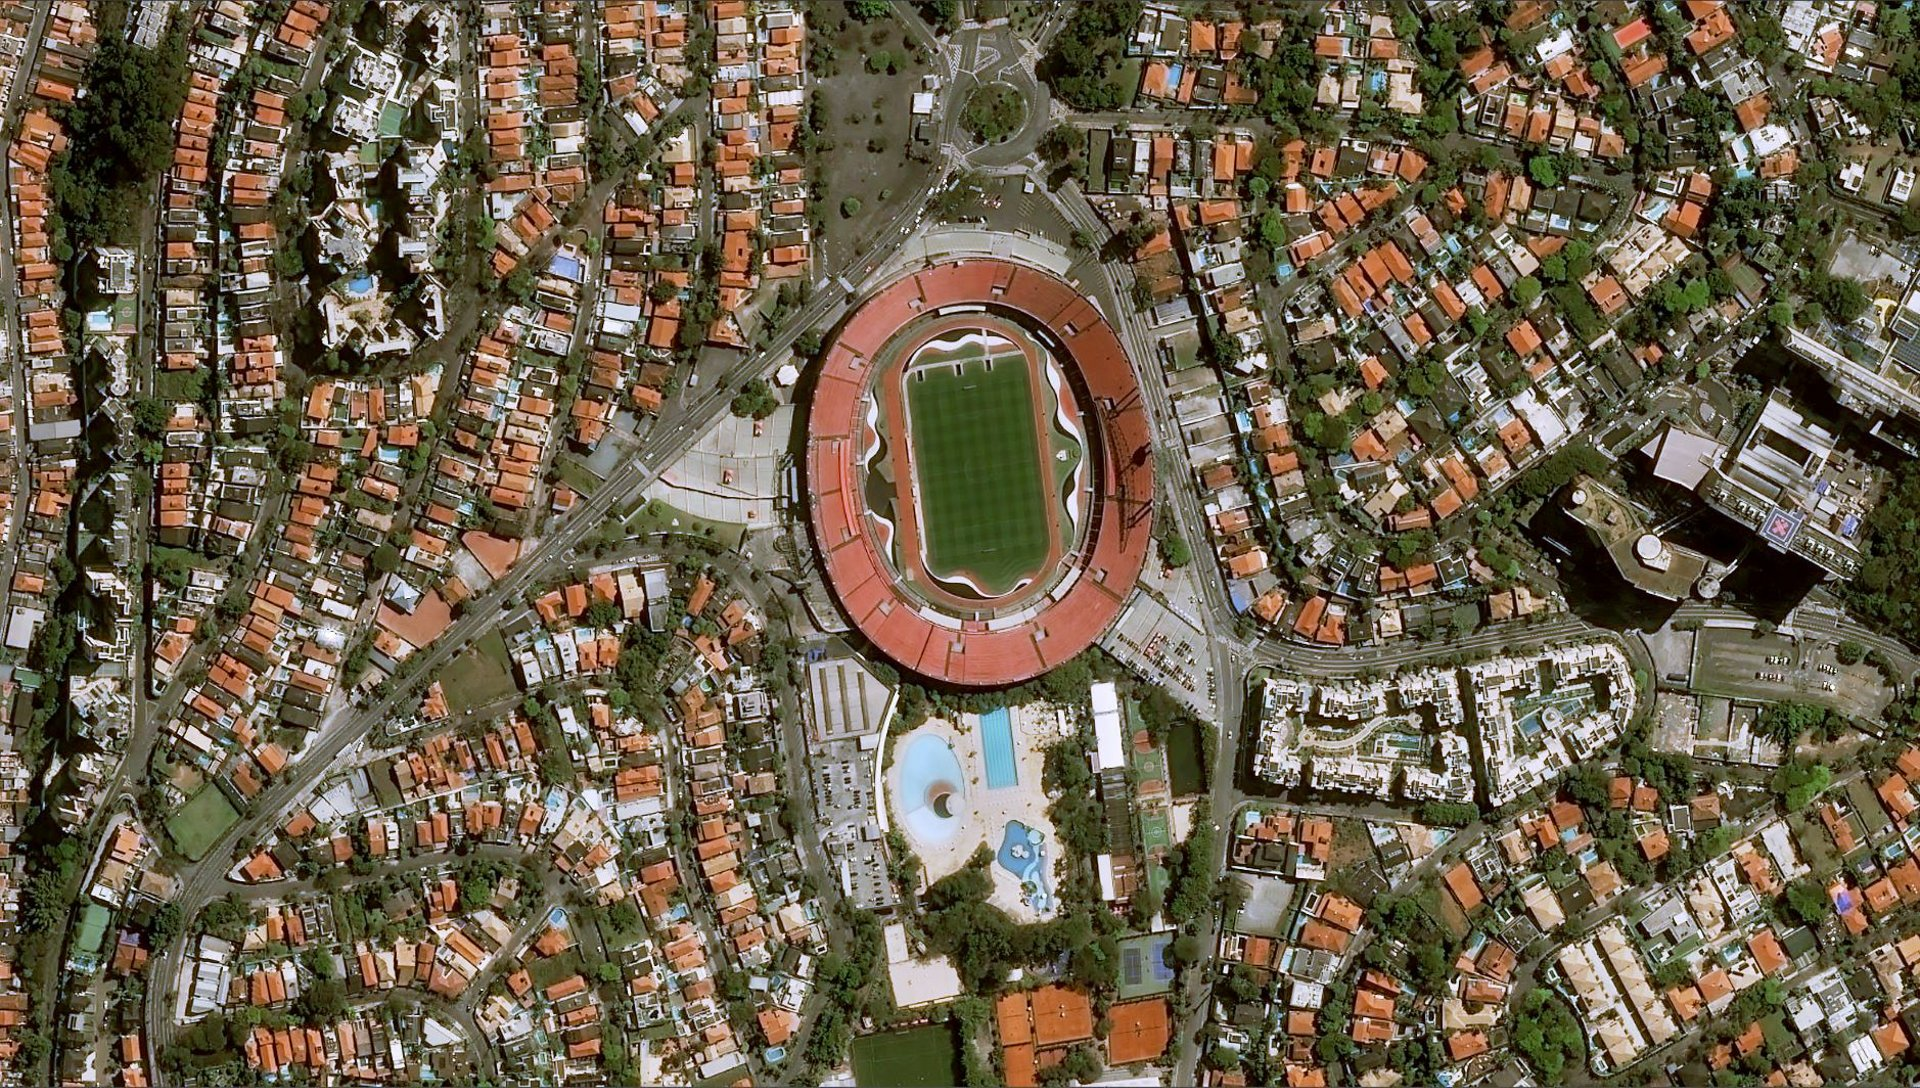 Morumbi Stadium, Sao Paulo (capacity: 67,400 seats) is one of the stadiums that will host the 46th edition of the Copa América - CONMEBOL in Brazil from 14 June to 7 July 2019.